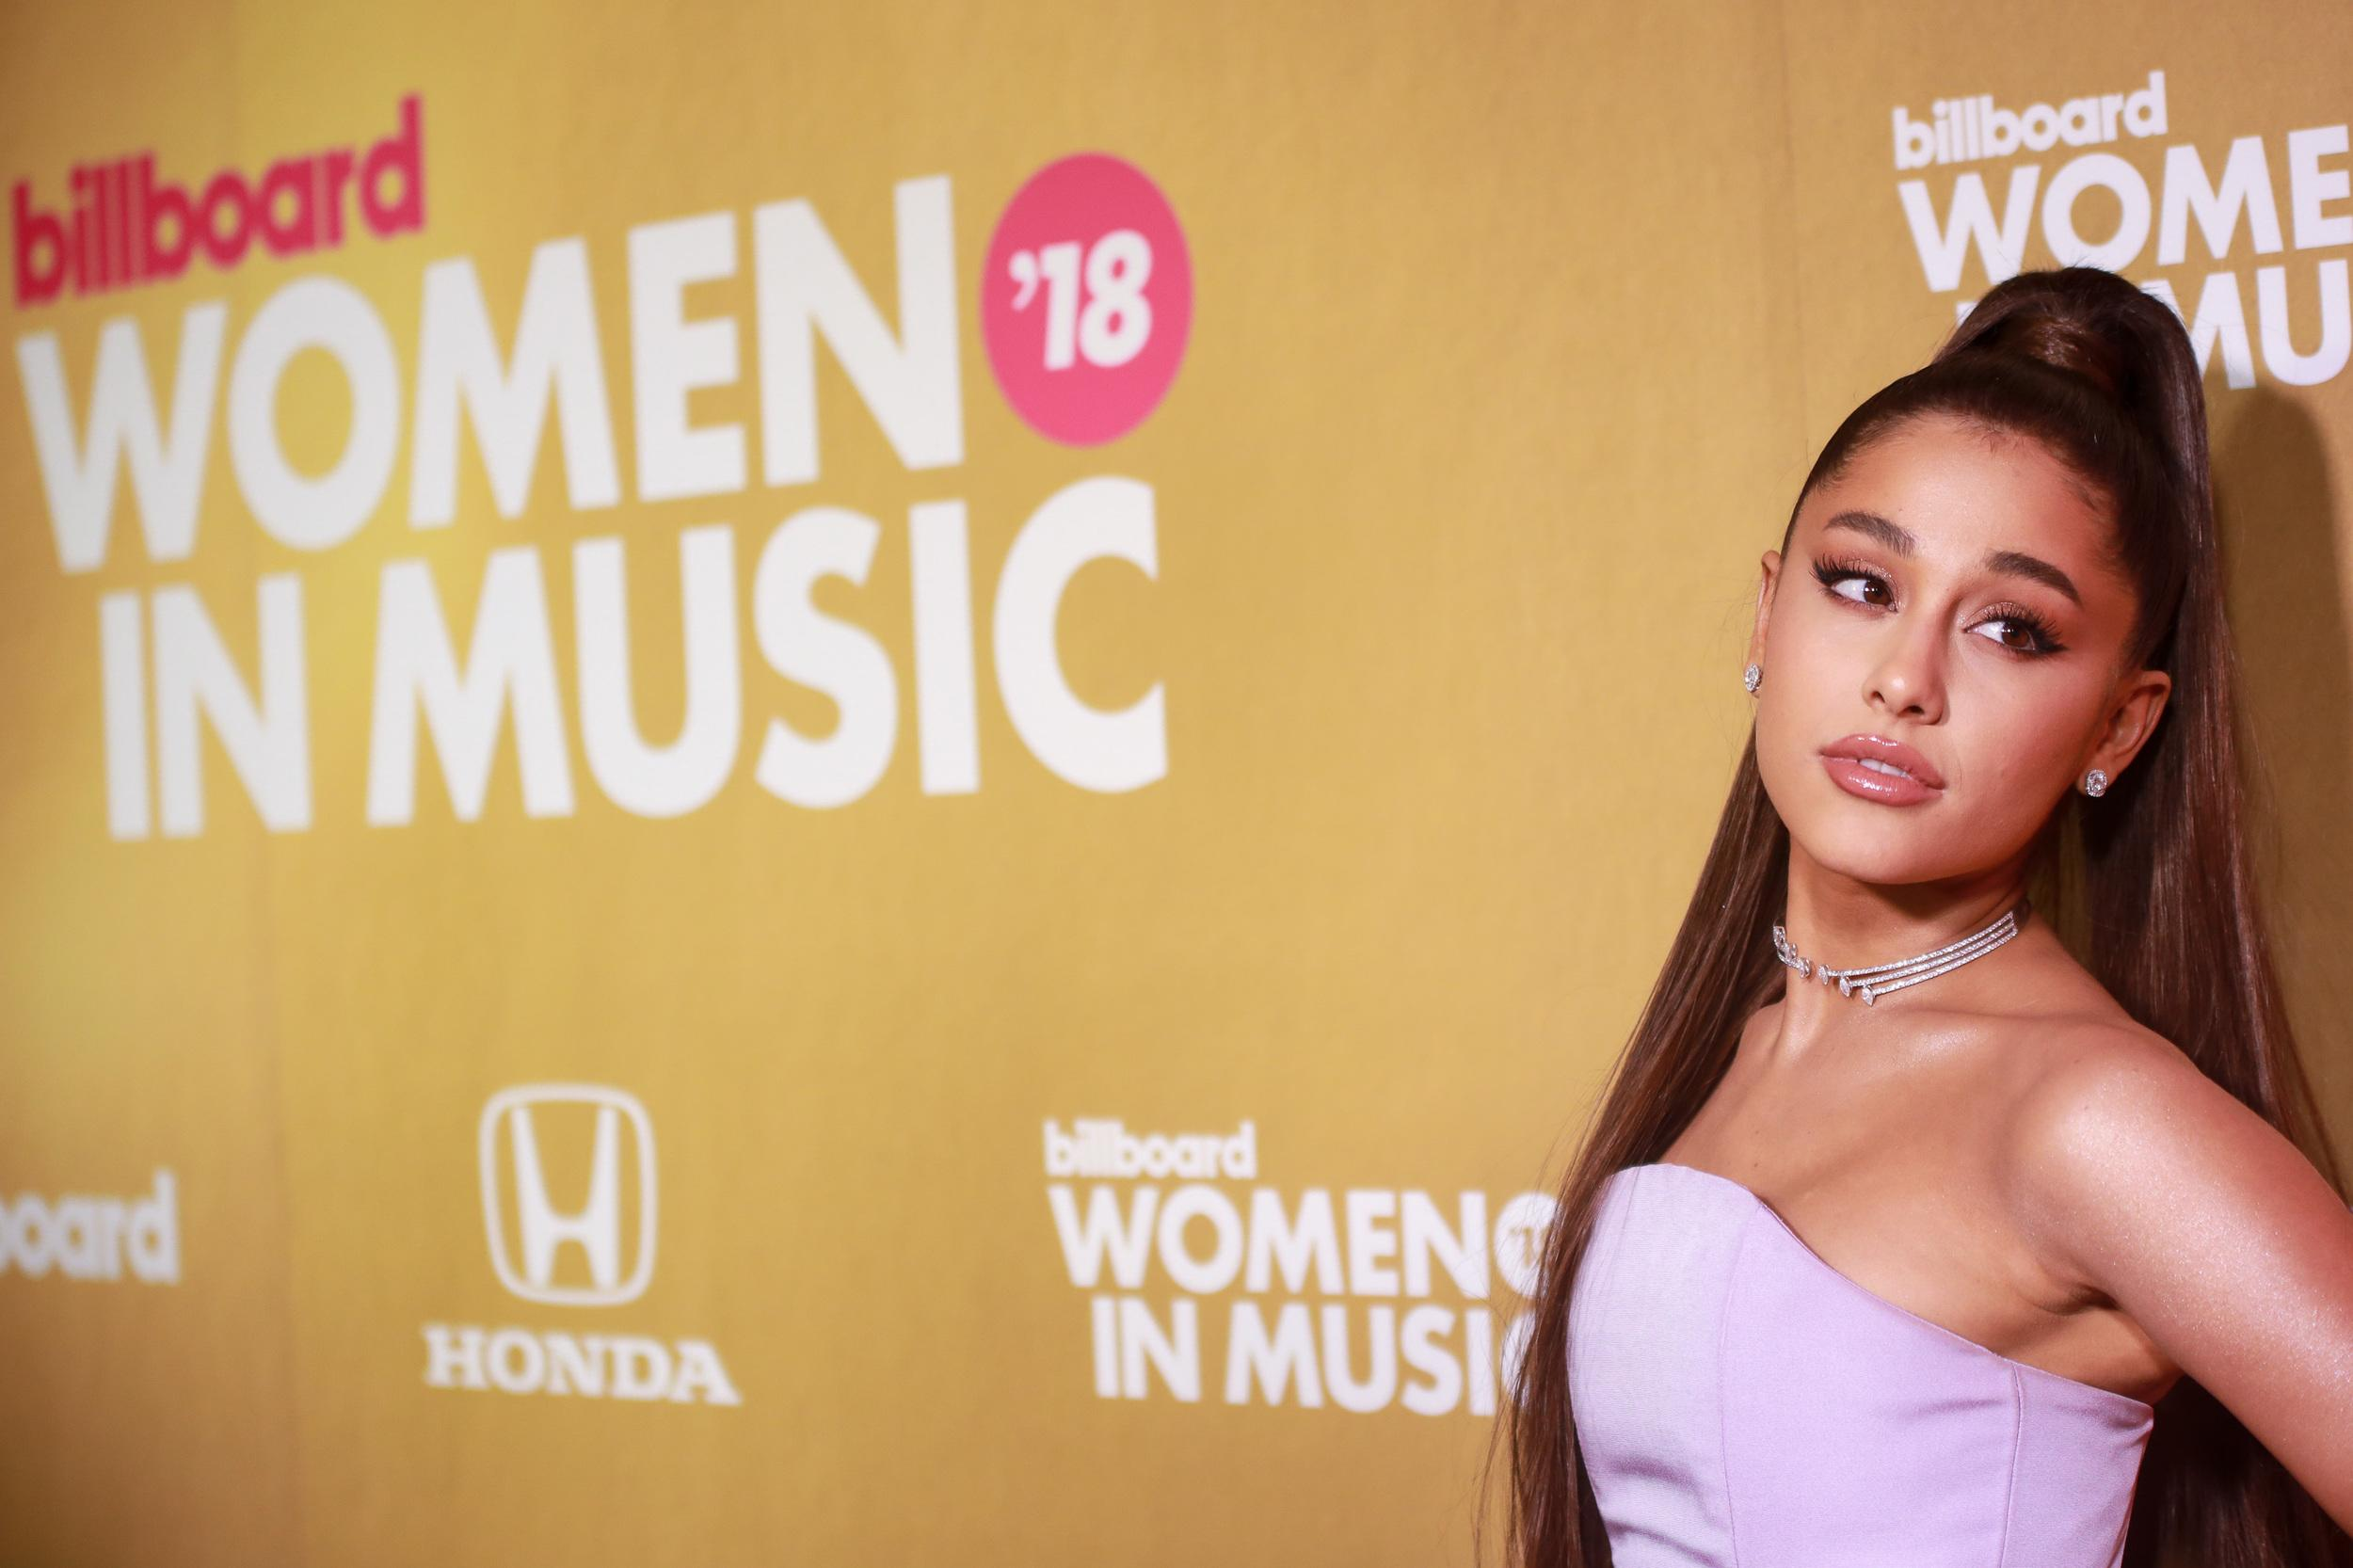 Ariana Grande attends Billboard 2018 Women in Music at Pier 36 on December 6, 2018 in New York, NY. (Photo by Jason Mendez/Sipa USA)